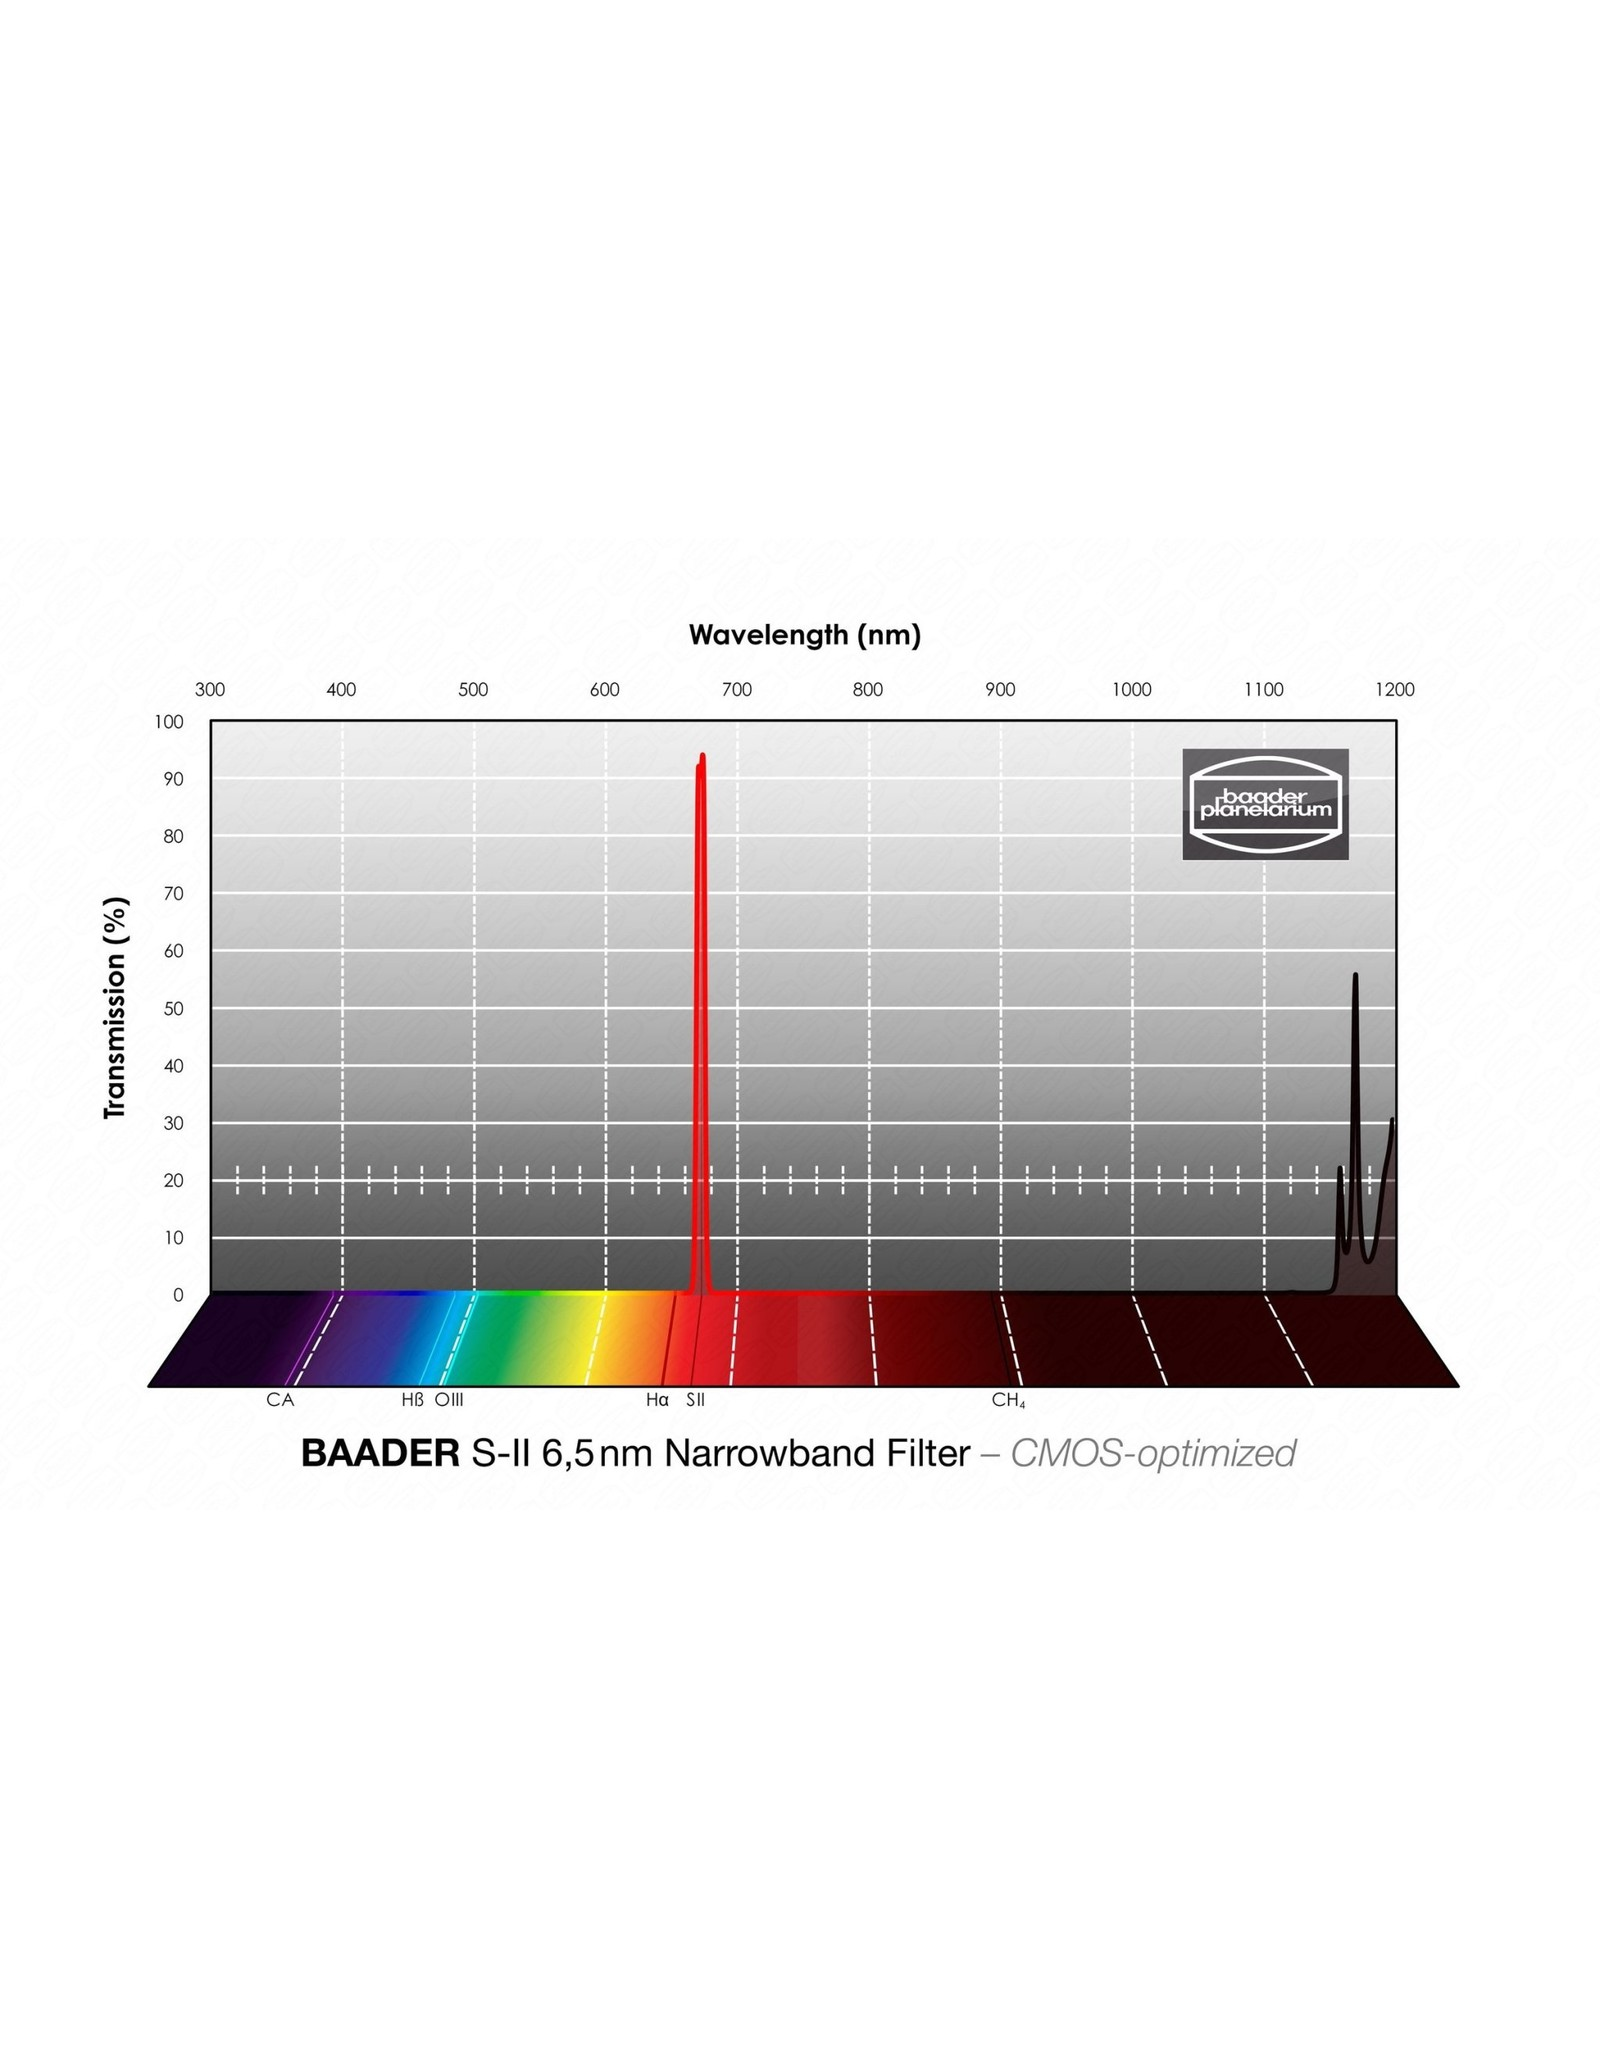 Baader Planetarium Baader 6.5nm Narrowband Sulfur-II Filters – CMOS-optimized (Specify Size)